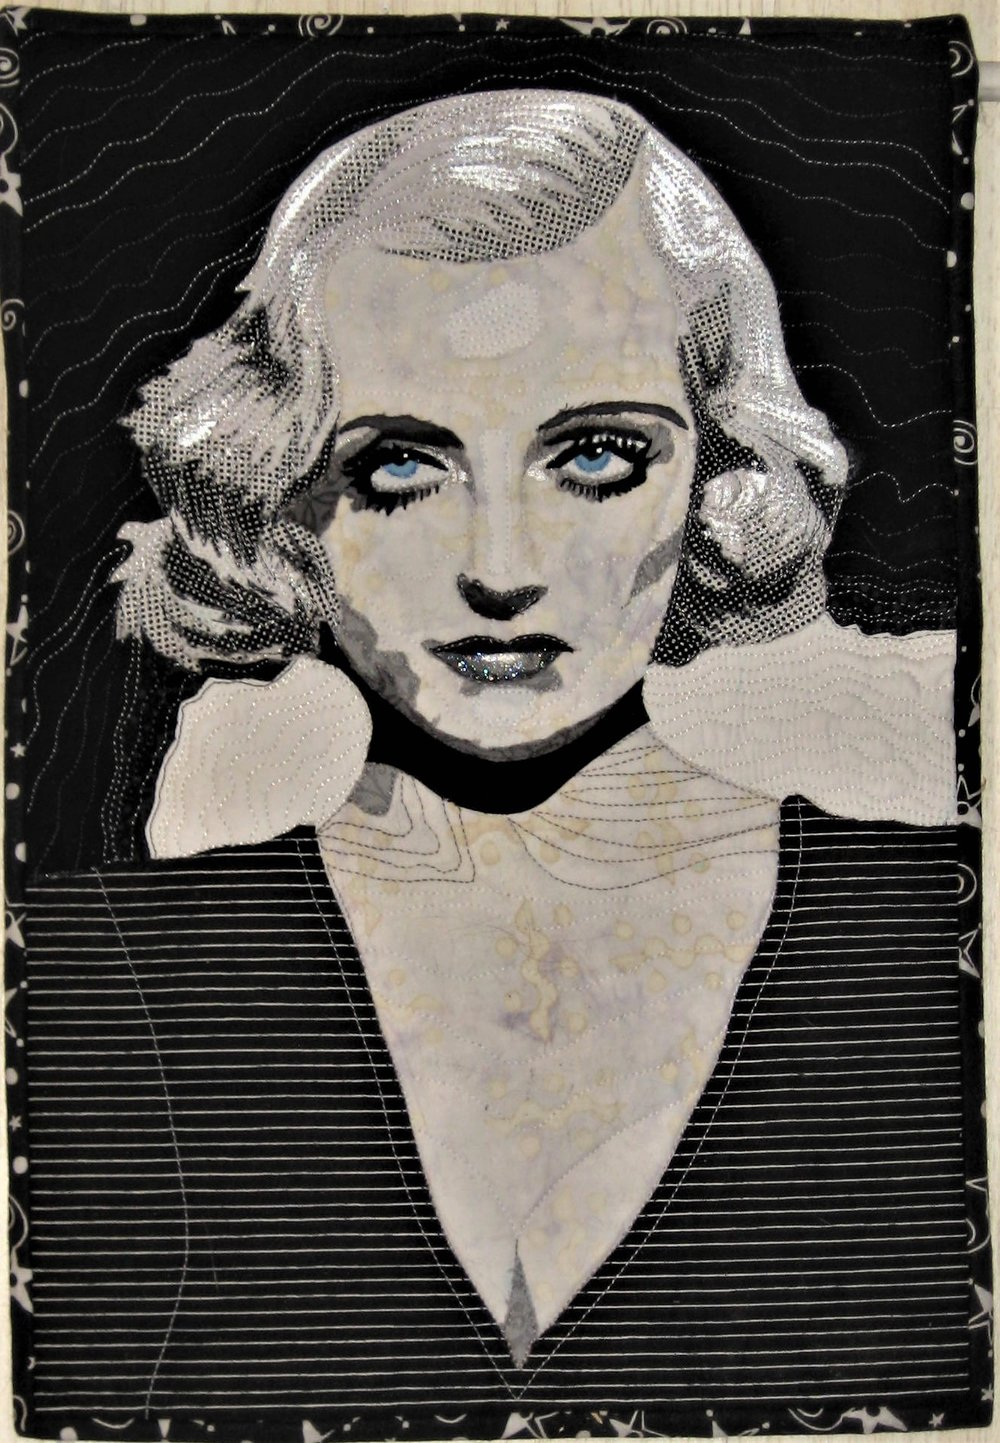 "Today is reveal day for my Facebook art quilt group Art Quilts Around The World. The challenge was titled Film Noir and I did not know this subject until I Googled it. It represents the Black and White movies of the 20s-30s when the movie industry was in its infancy. Plenty of dark smoky rooms, everyone was smoking cigarettes, shadows, interestingly textured backgrounds, dark street scenes and, my personal favorite, femme fatales!! They were the actresses who became famous from the movies they were in-Bette Davis, Carole Lombard and Myrna Loy to name a few. Sorry but no cigarettes in my quilts!  I saw this challenge as a study of value and chose to work in black and white with the exception of using a light icy blue for the irises in my portrait quilt. I found a photo where the bleach blonde finger waves caught my attention. This was my challenge to create a 3D image on a flat surface and capture the way the light or lack of light hit the waves in the hair.   I was not sure if I wanted to create a value scale from white to gray to black OR use prints and go from white to a white print with black to a black print with white to solid black. I chose both-grays for the skin tones and the prints for the hair. I collect white batiks and they are difficult to come by. I had a pile or ""warm"" whites for the skin tones and ""cool"" whites for the hair. I used as many small scale prints as I could so it ""read"" as a solid from a distance."